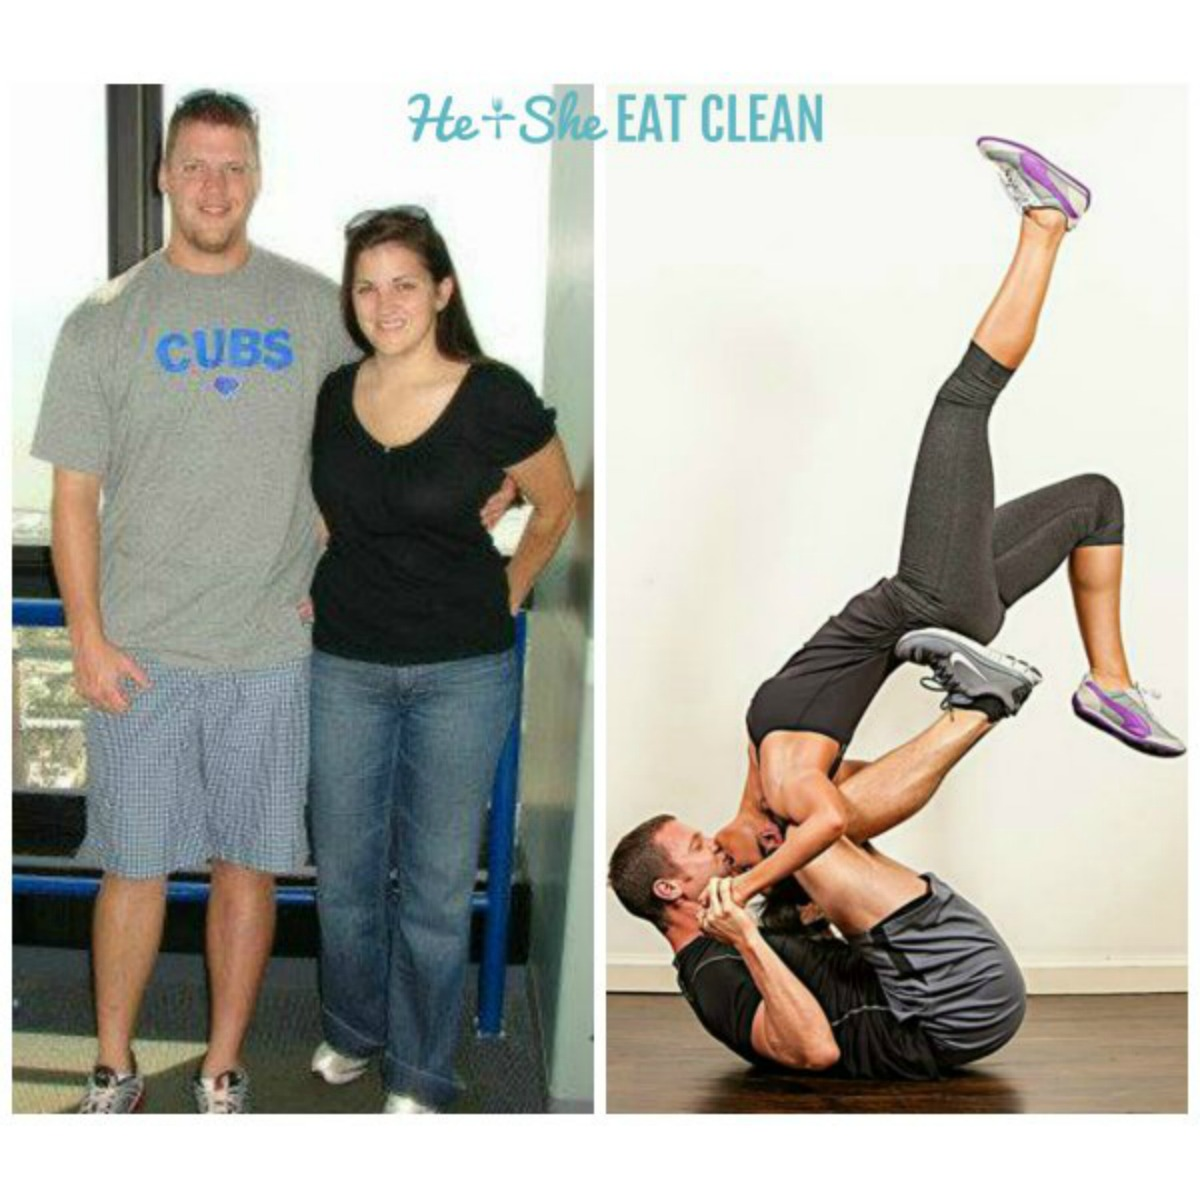 before and after picture of a couple who lost weight